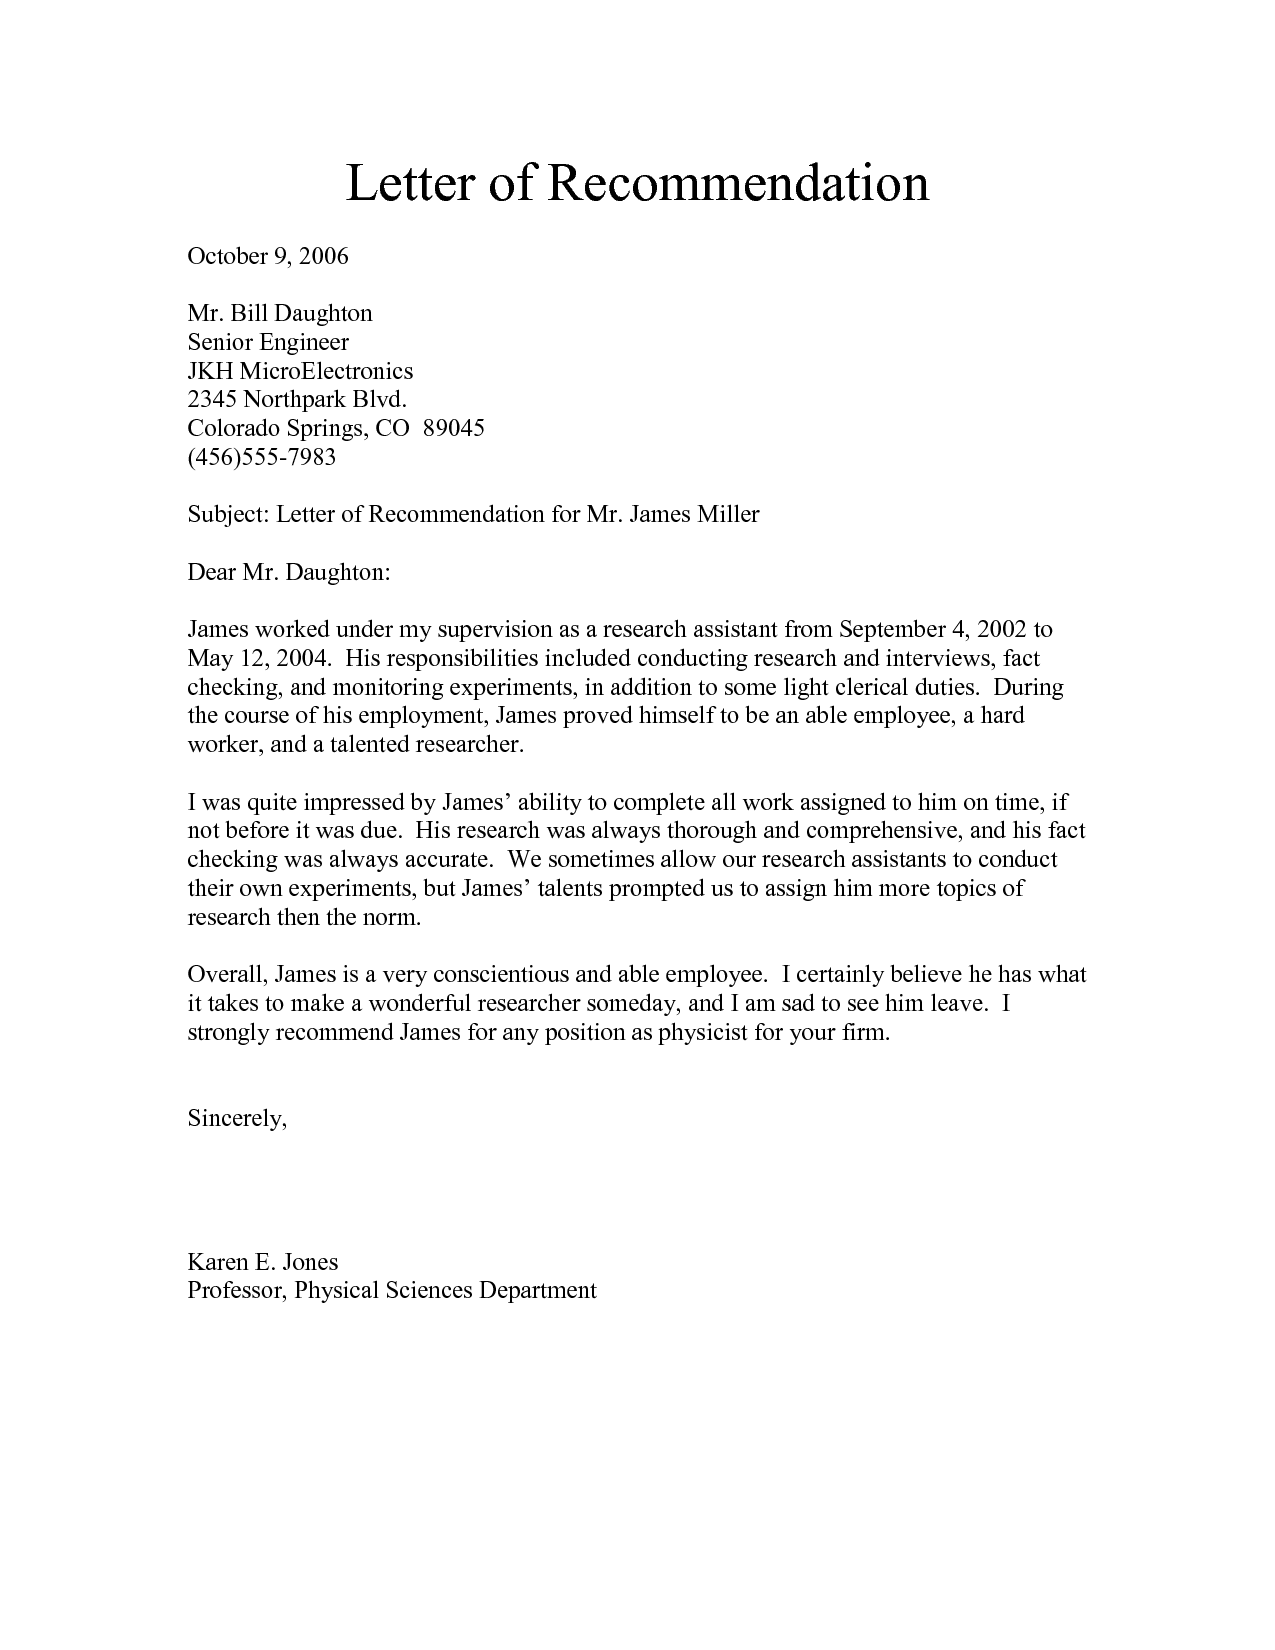 Recommended Letter Maraton Ponderresearch Co